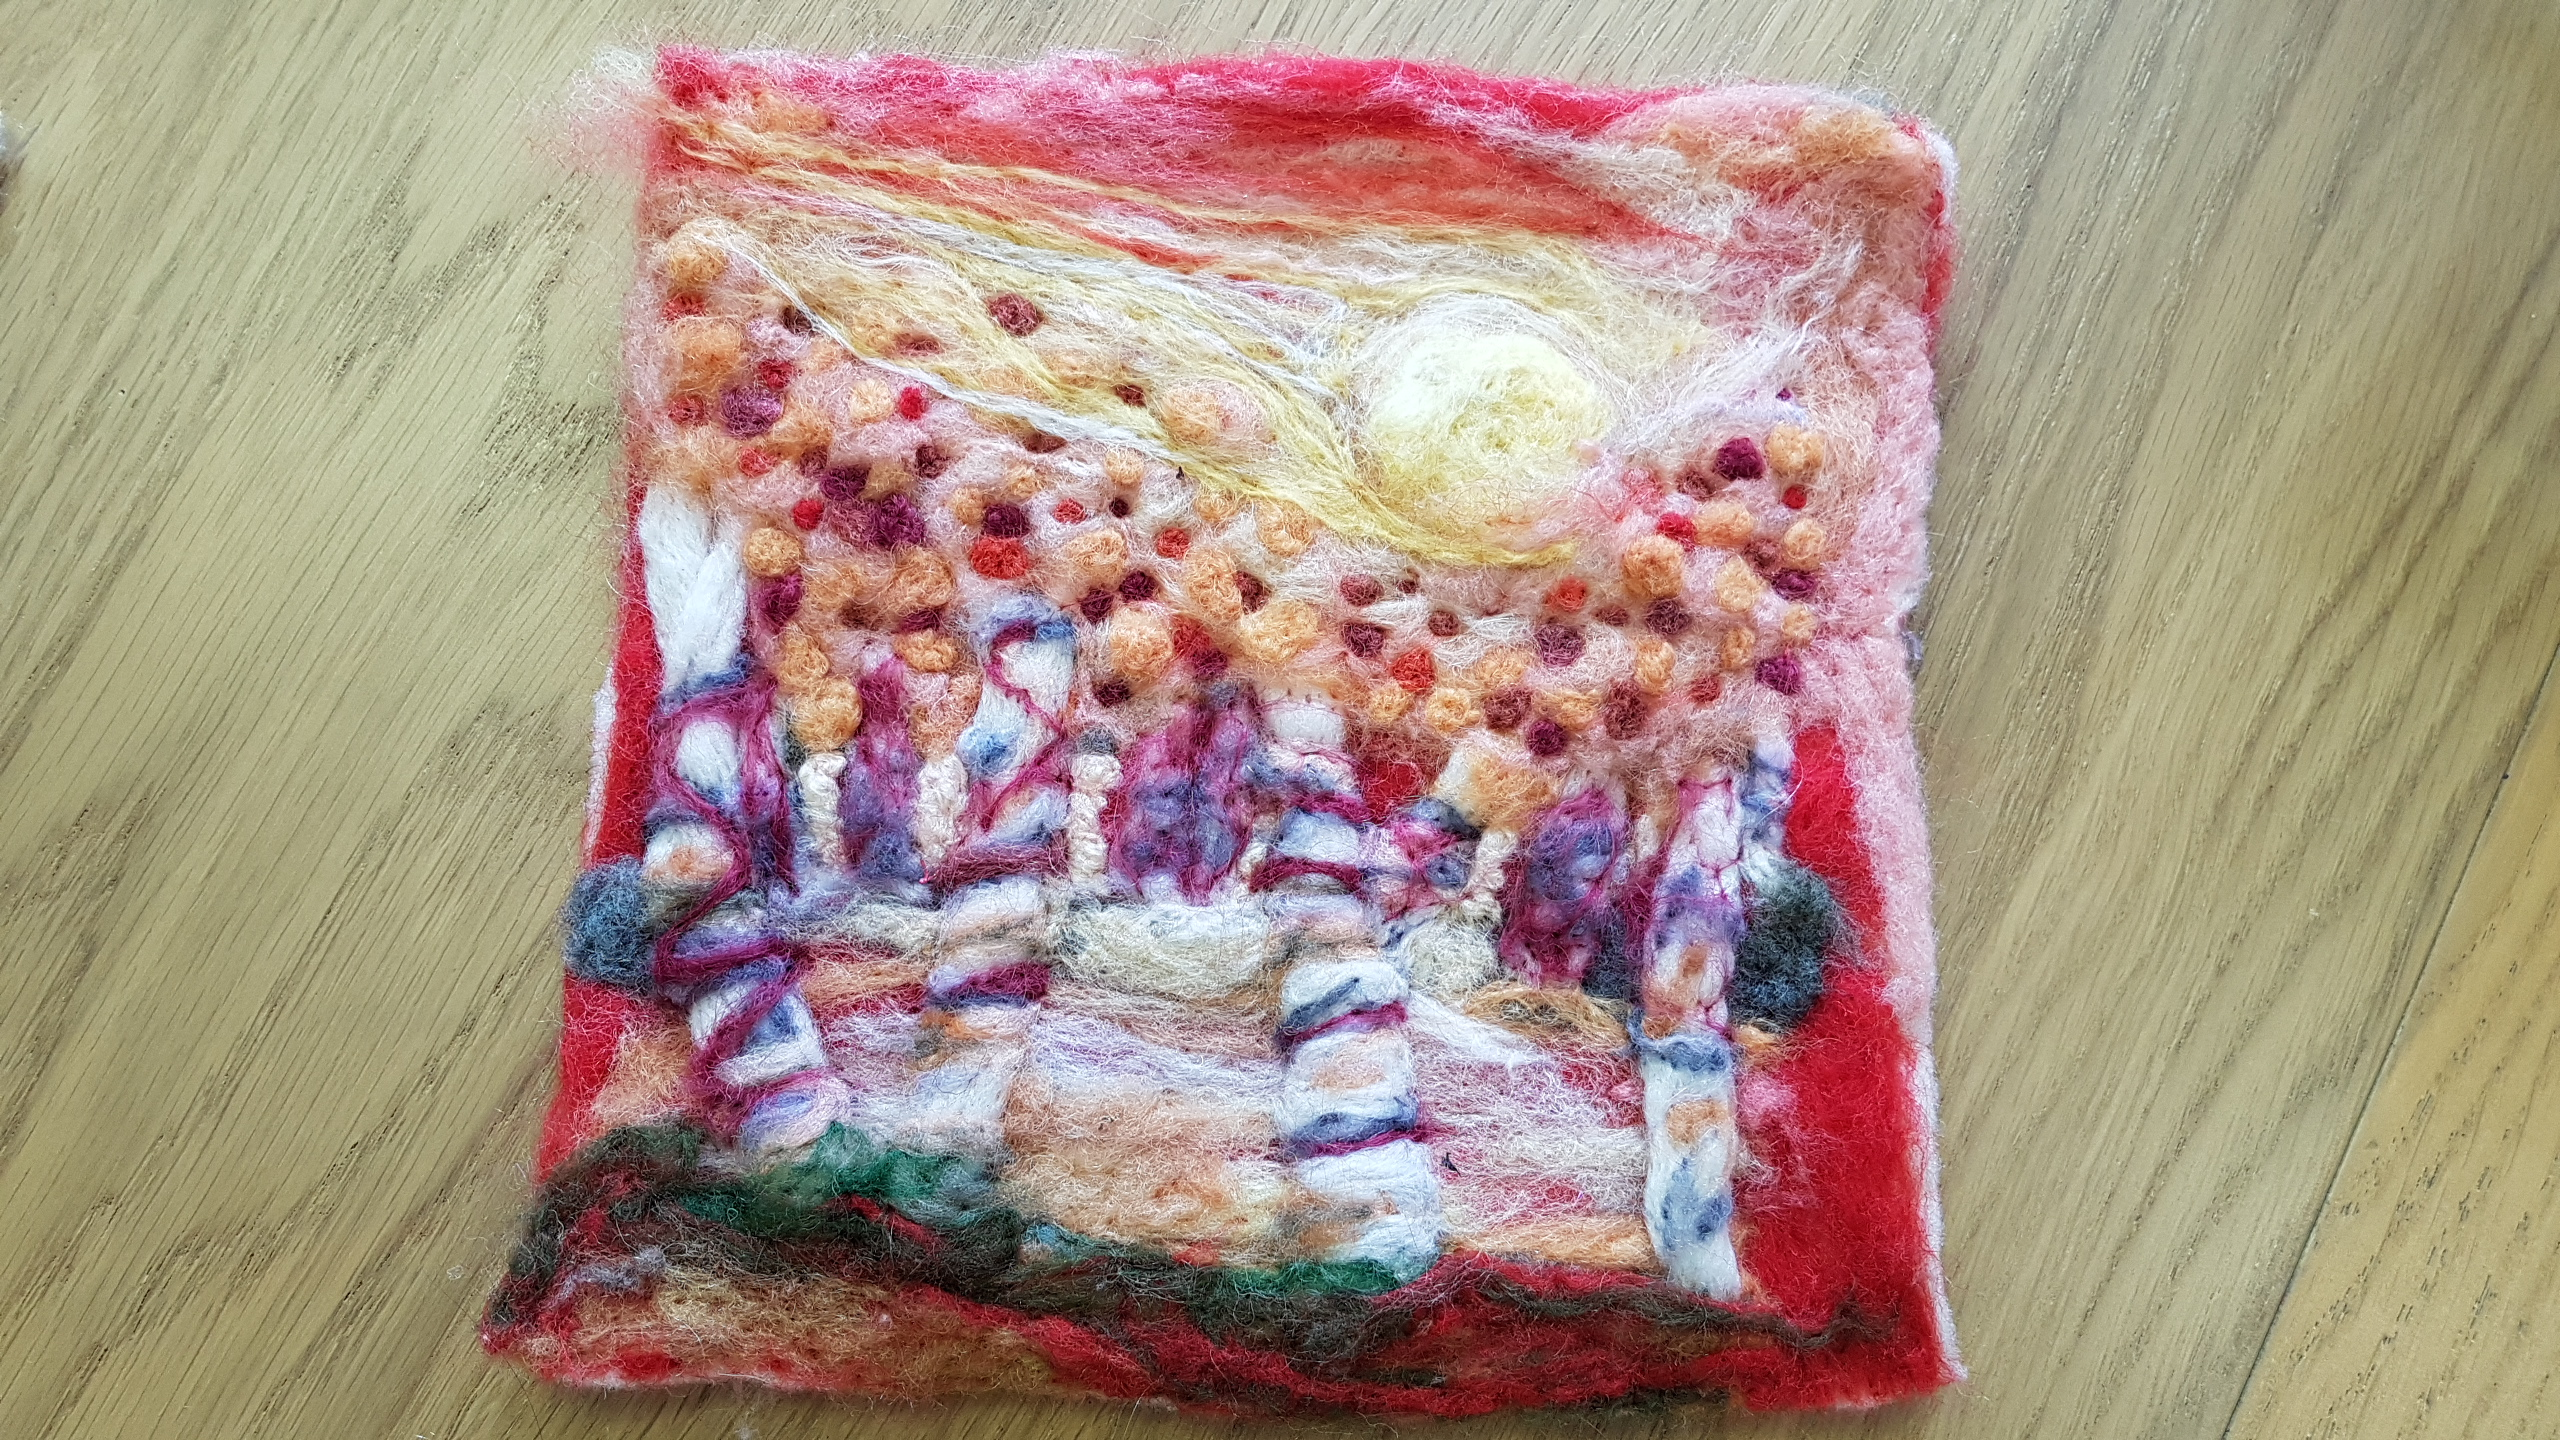 felting project completed by one of the students at the altrincham open studios friday textiles group